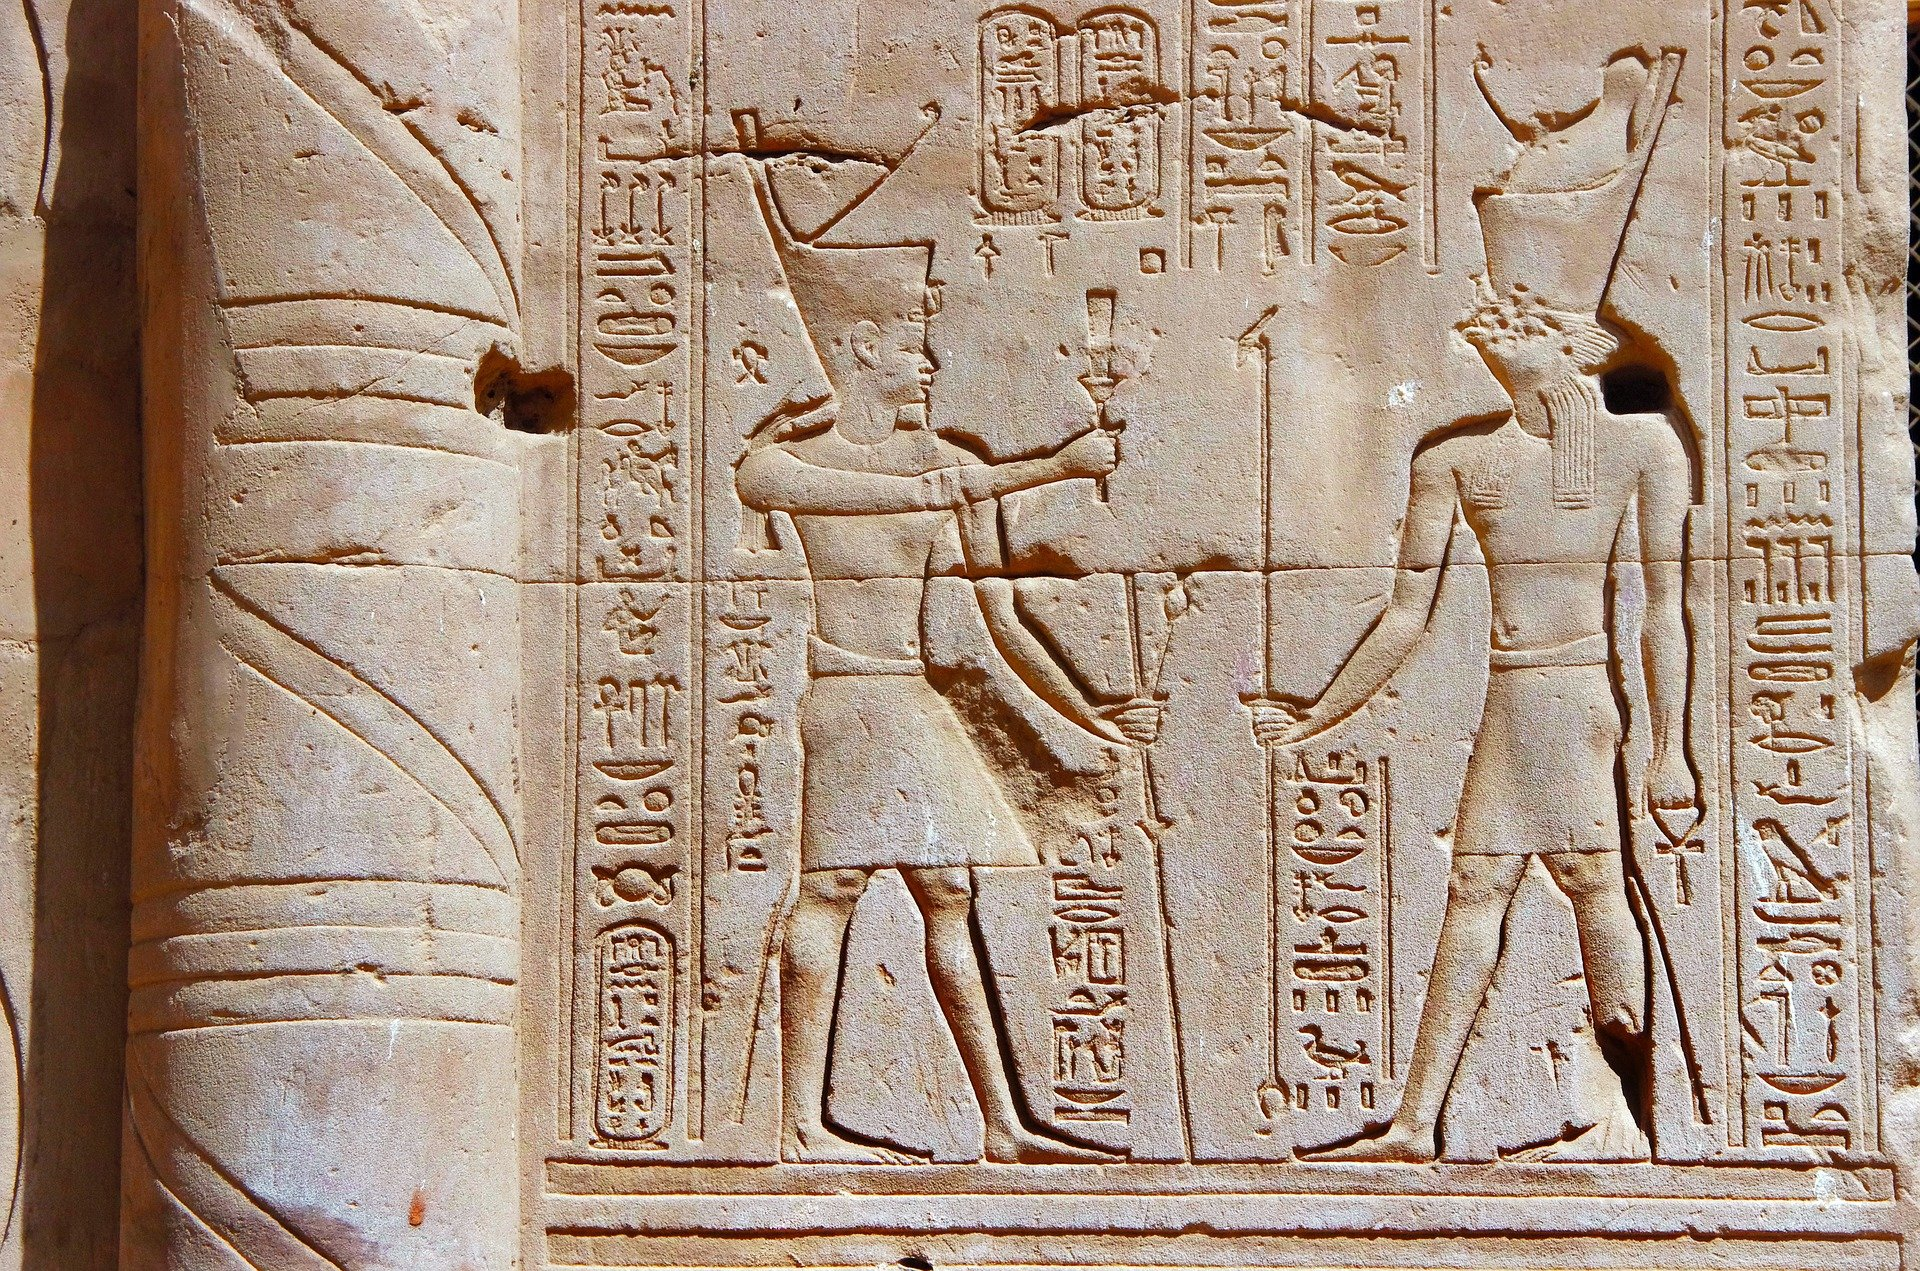 Ancient Egyptians discovered Algol's variability 3,000 years before western astronomers